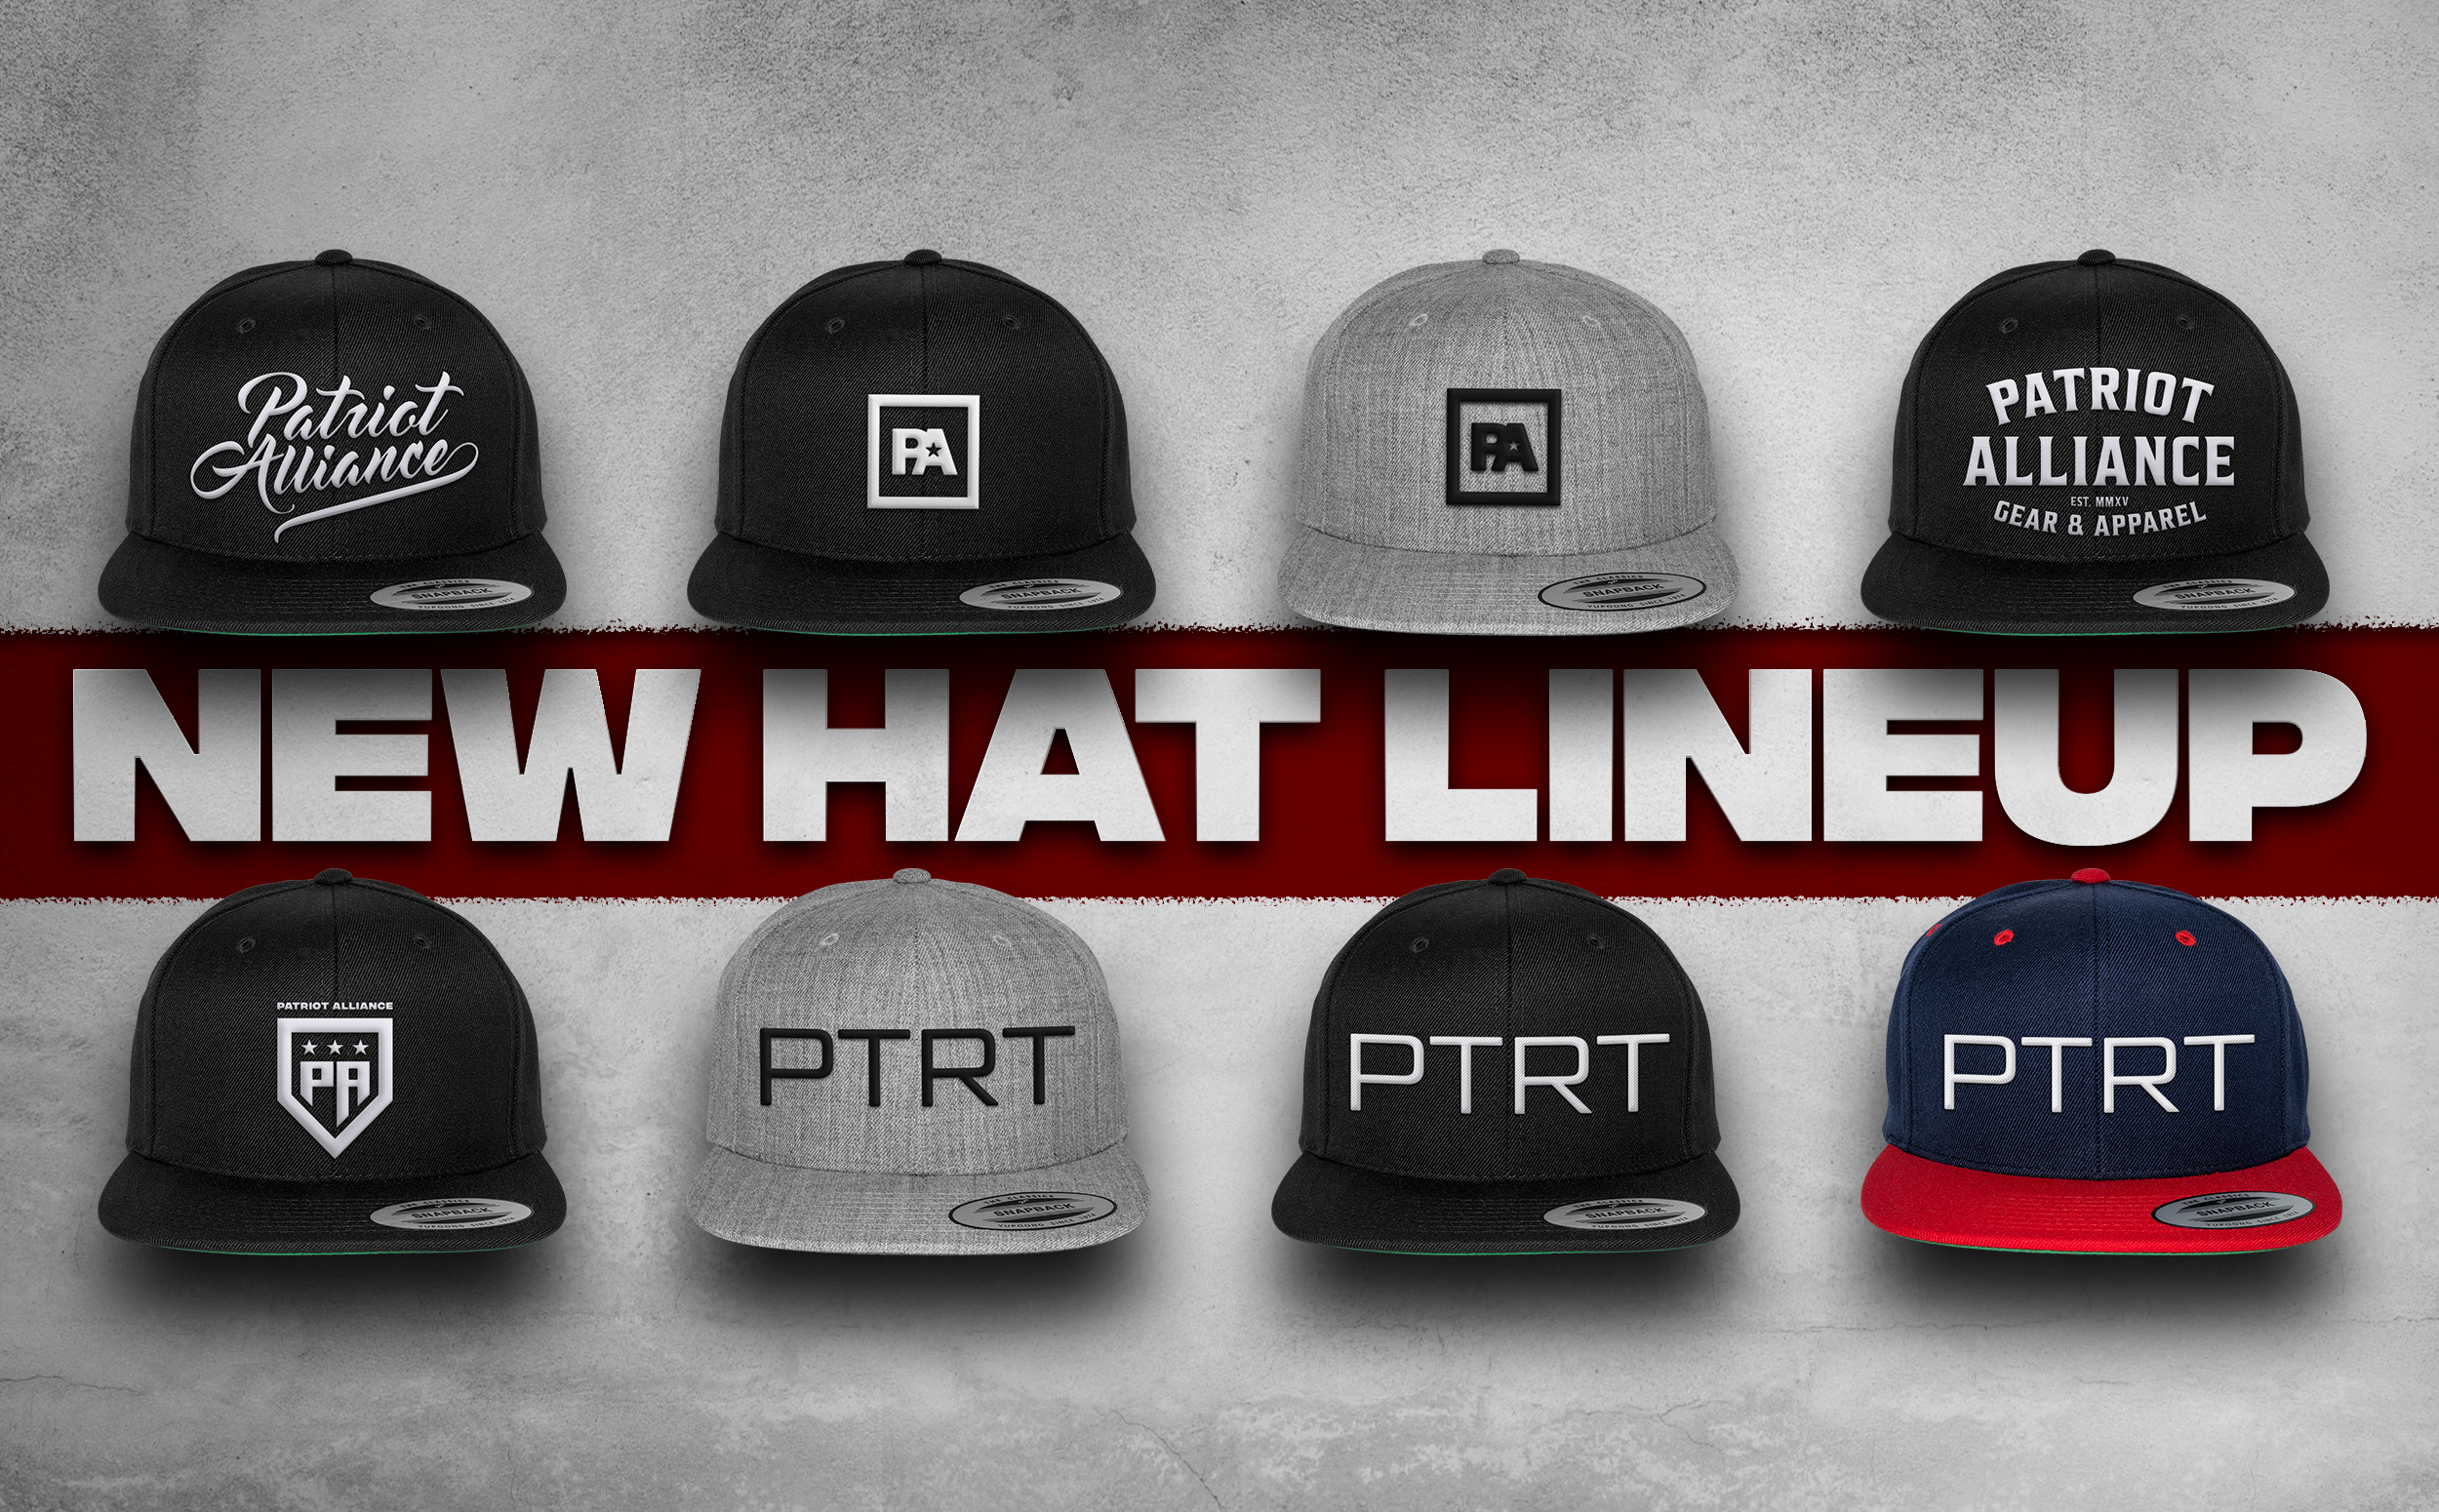 Mike Farina - Patriot Alliance - New Hat Lineup Graphic